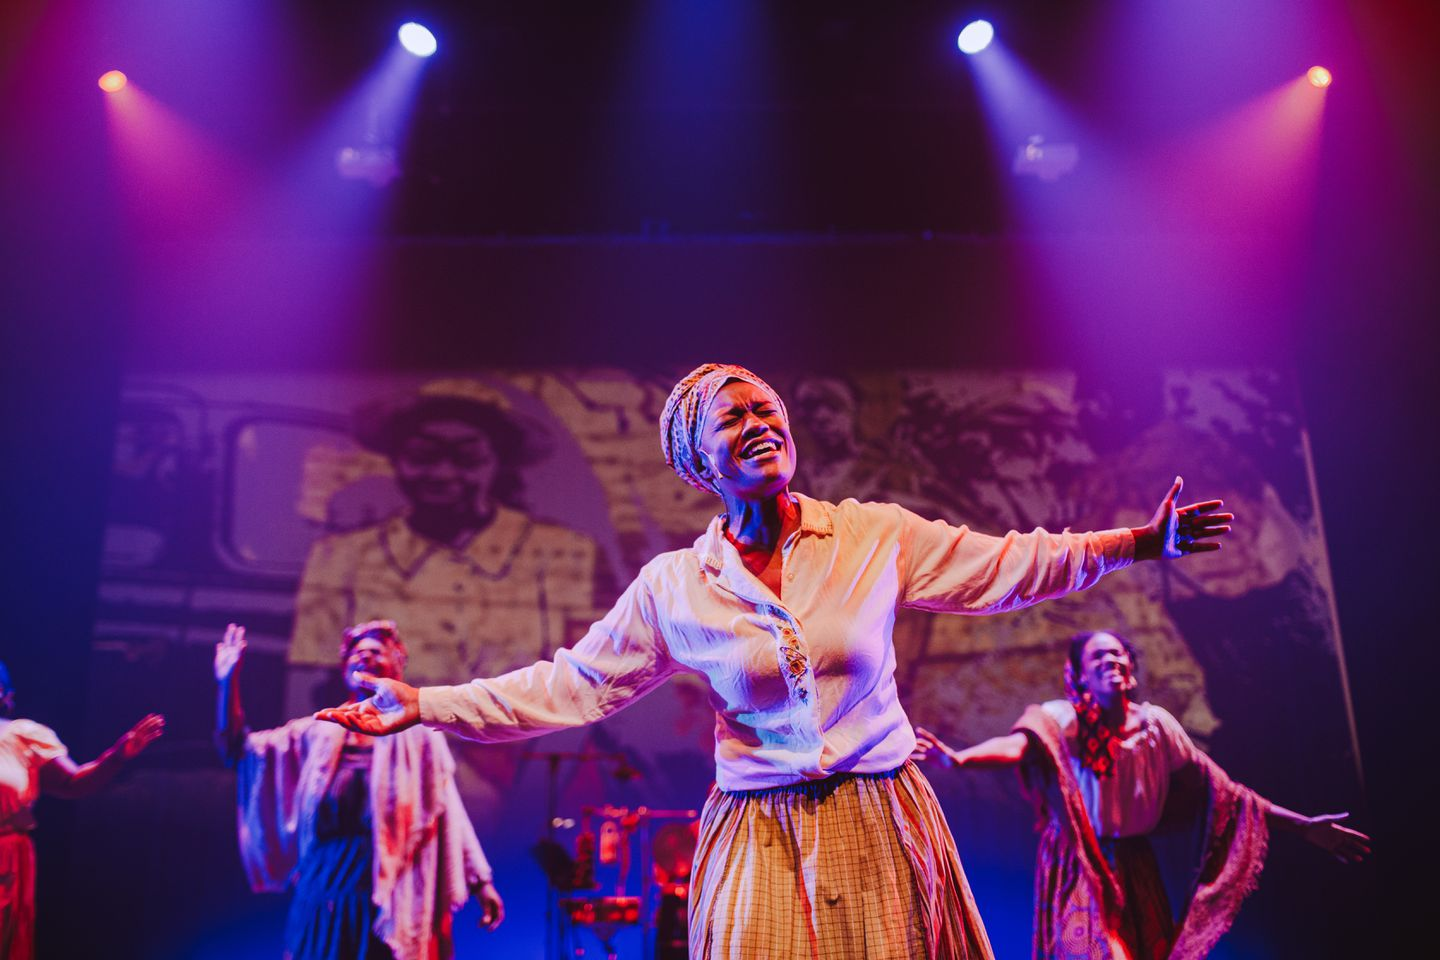 Gather the family to watch an hourlong original production of festive song and dance presented by Cleveland's Karamu House, the oldest Black performing arts institute in the nation.